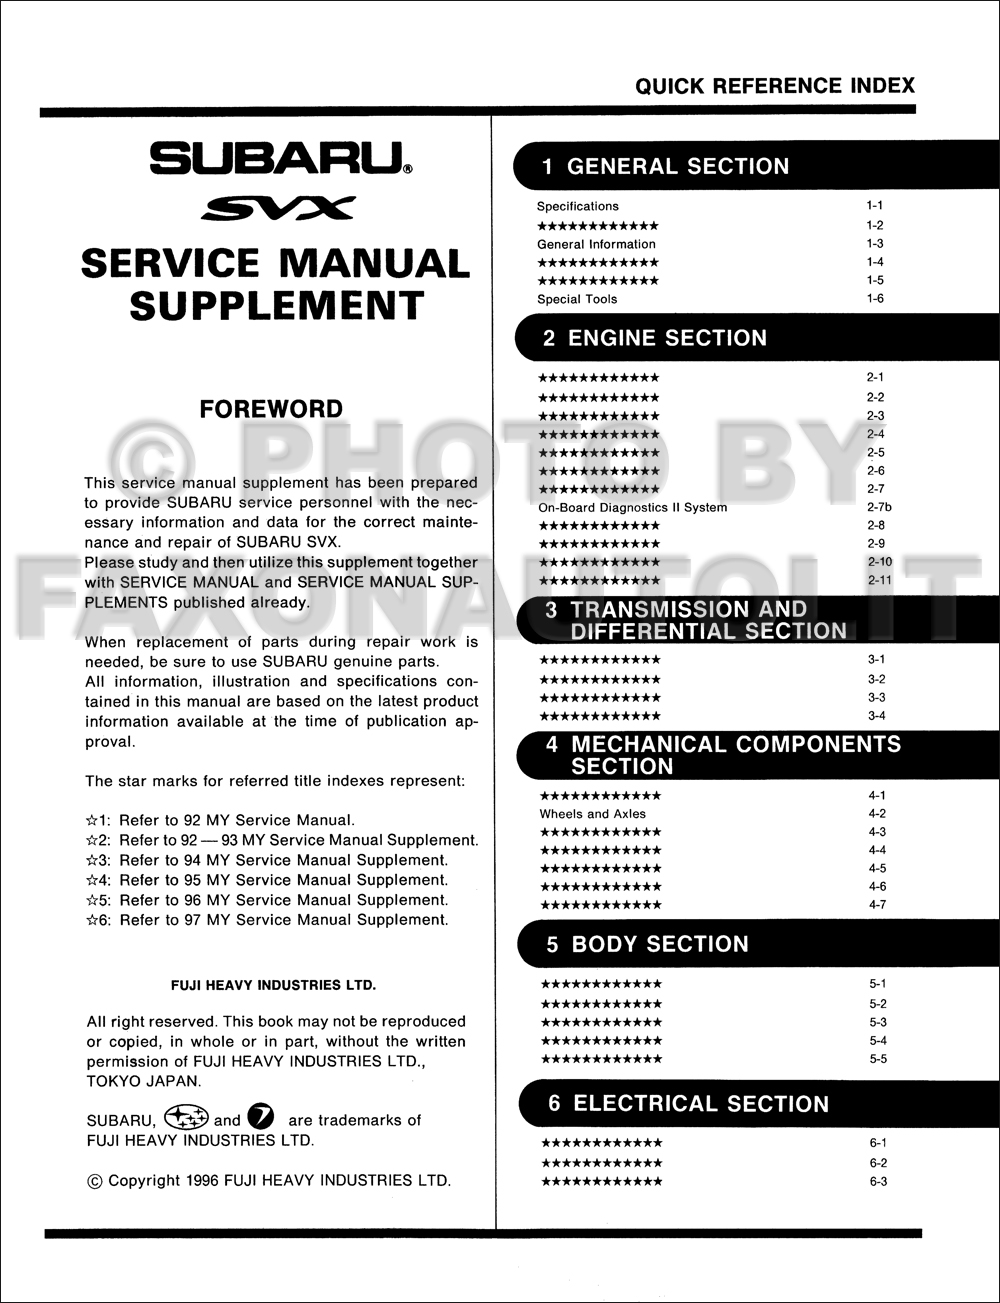 1997 Subaru Svx Repair Shop Manual Supplement Original Obd Ii 1992 Wiring Diagram Click On Thumbnail To Zoom